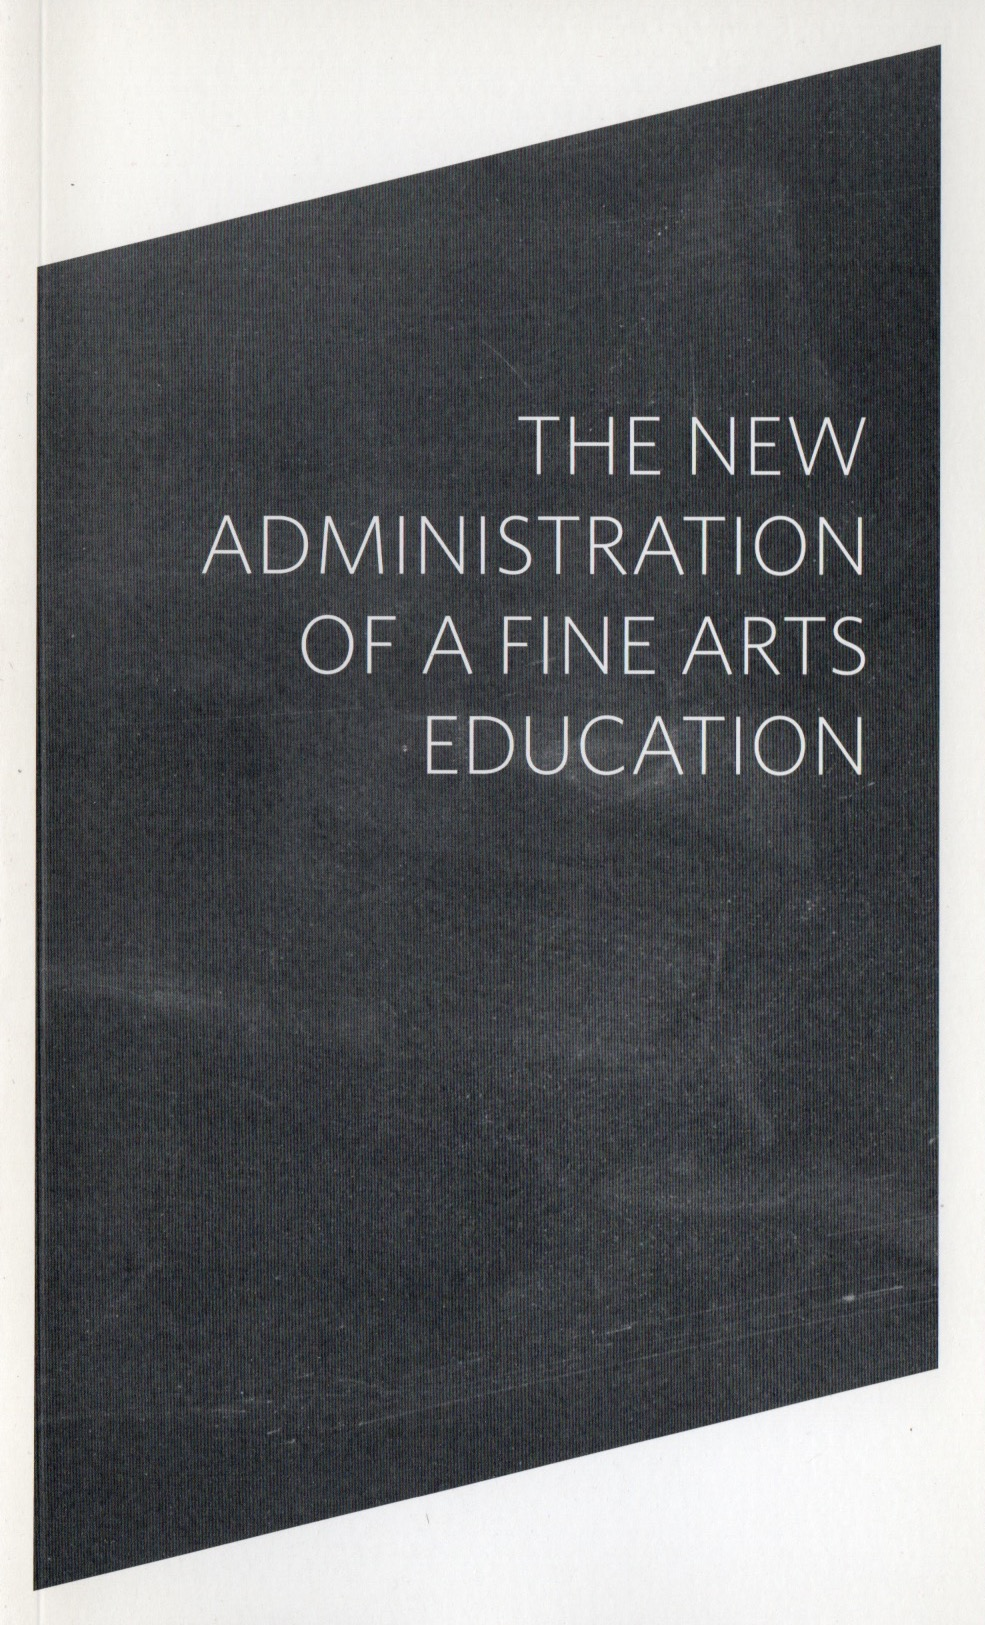 The New Administration of a Fine Arts Education.jpeg